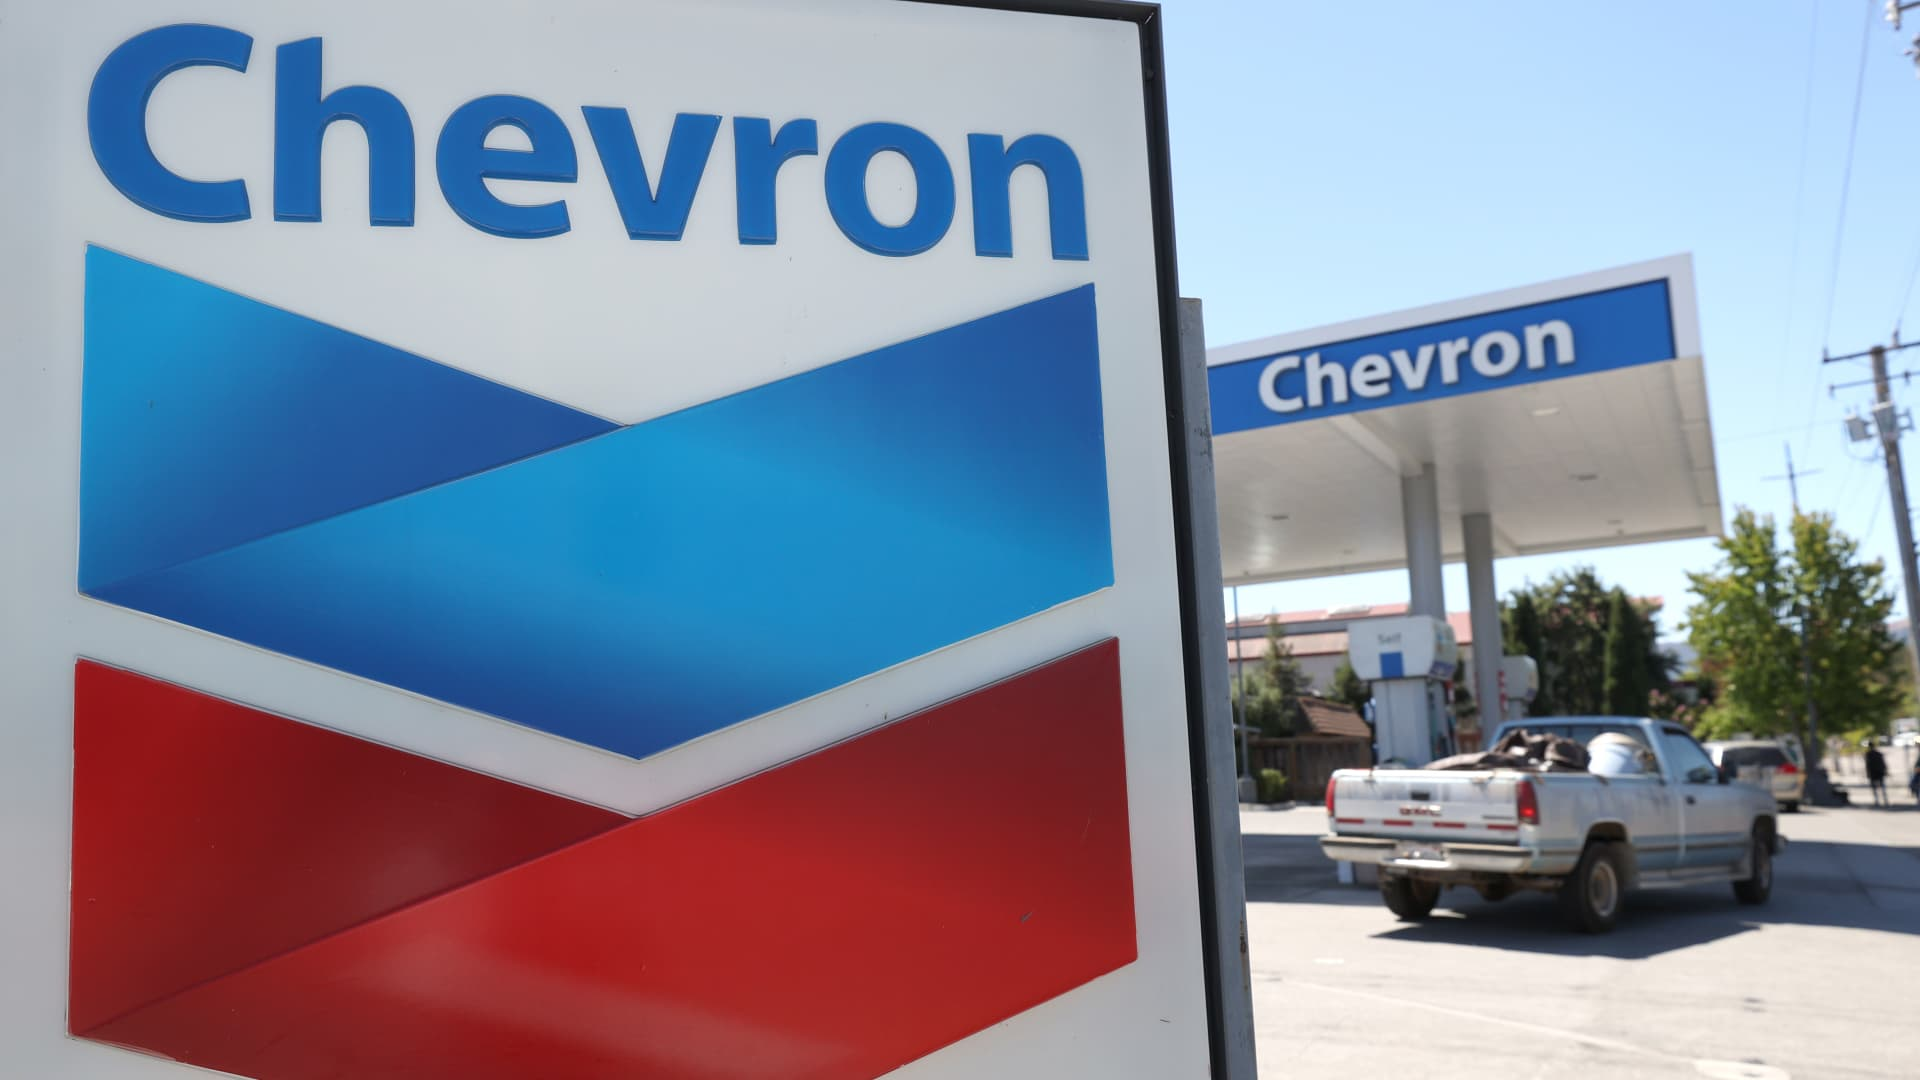 A sign is posted in front of a Chevron gas station on July 31, 2020 in Novato, California.